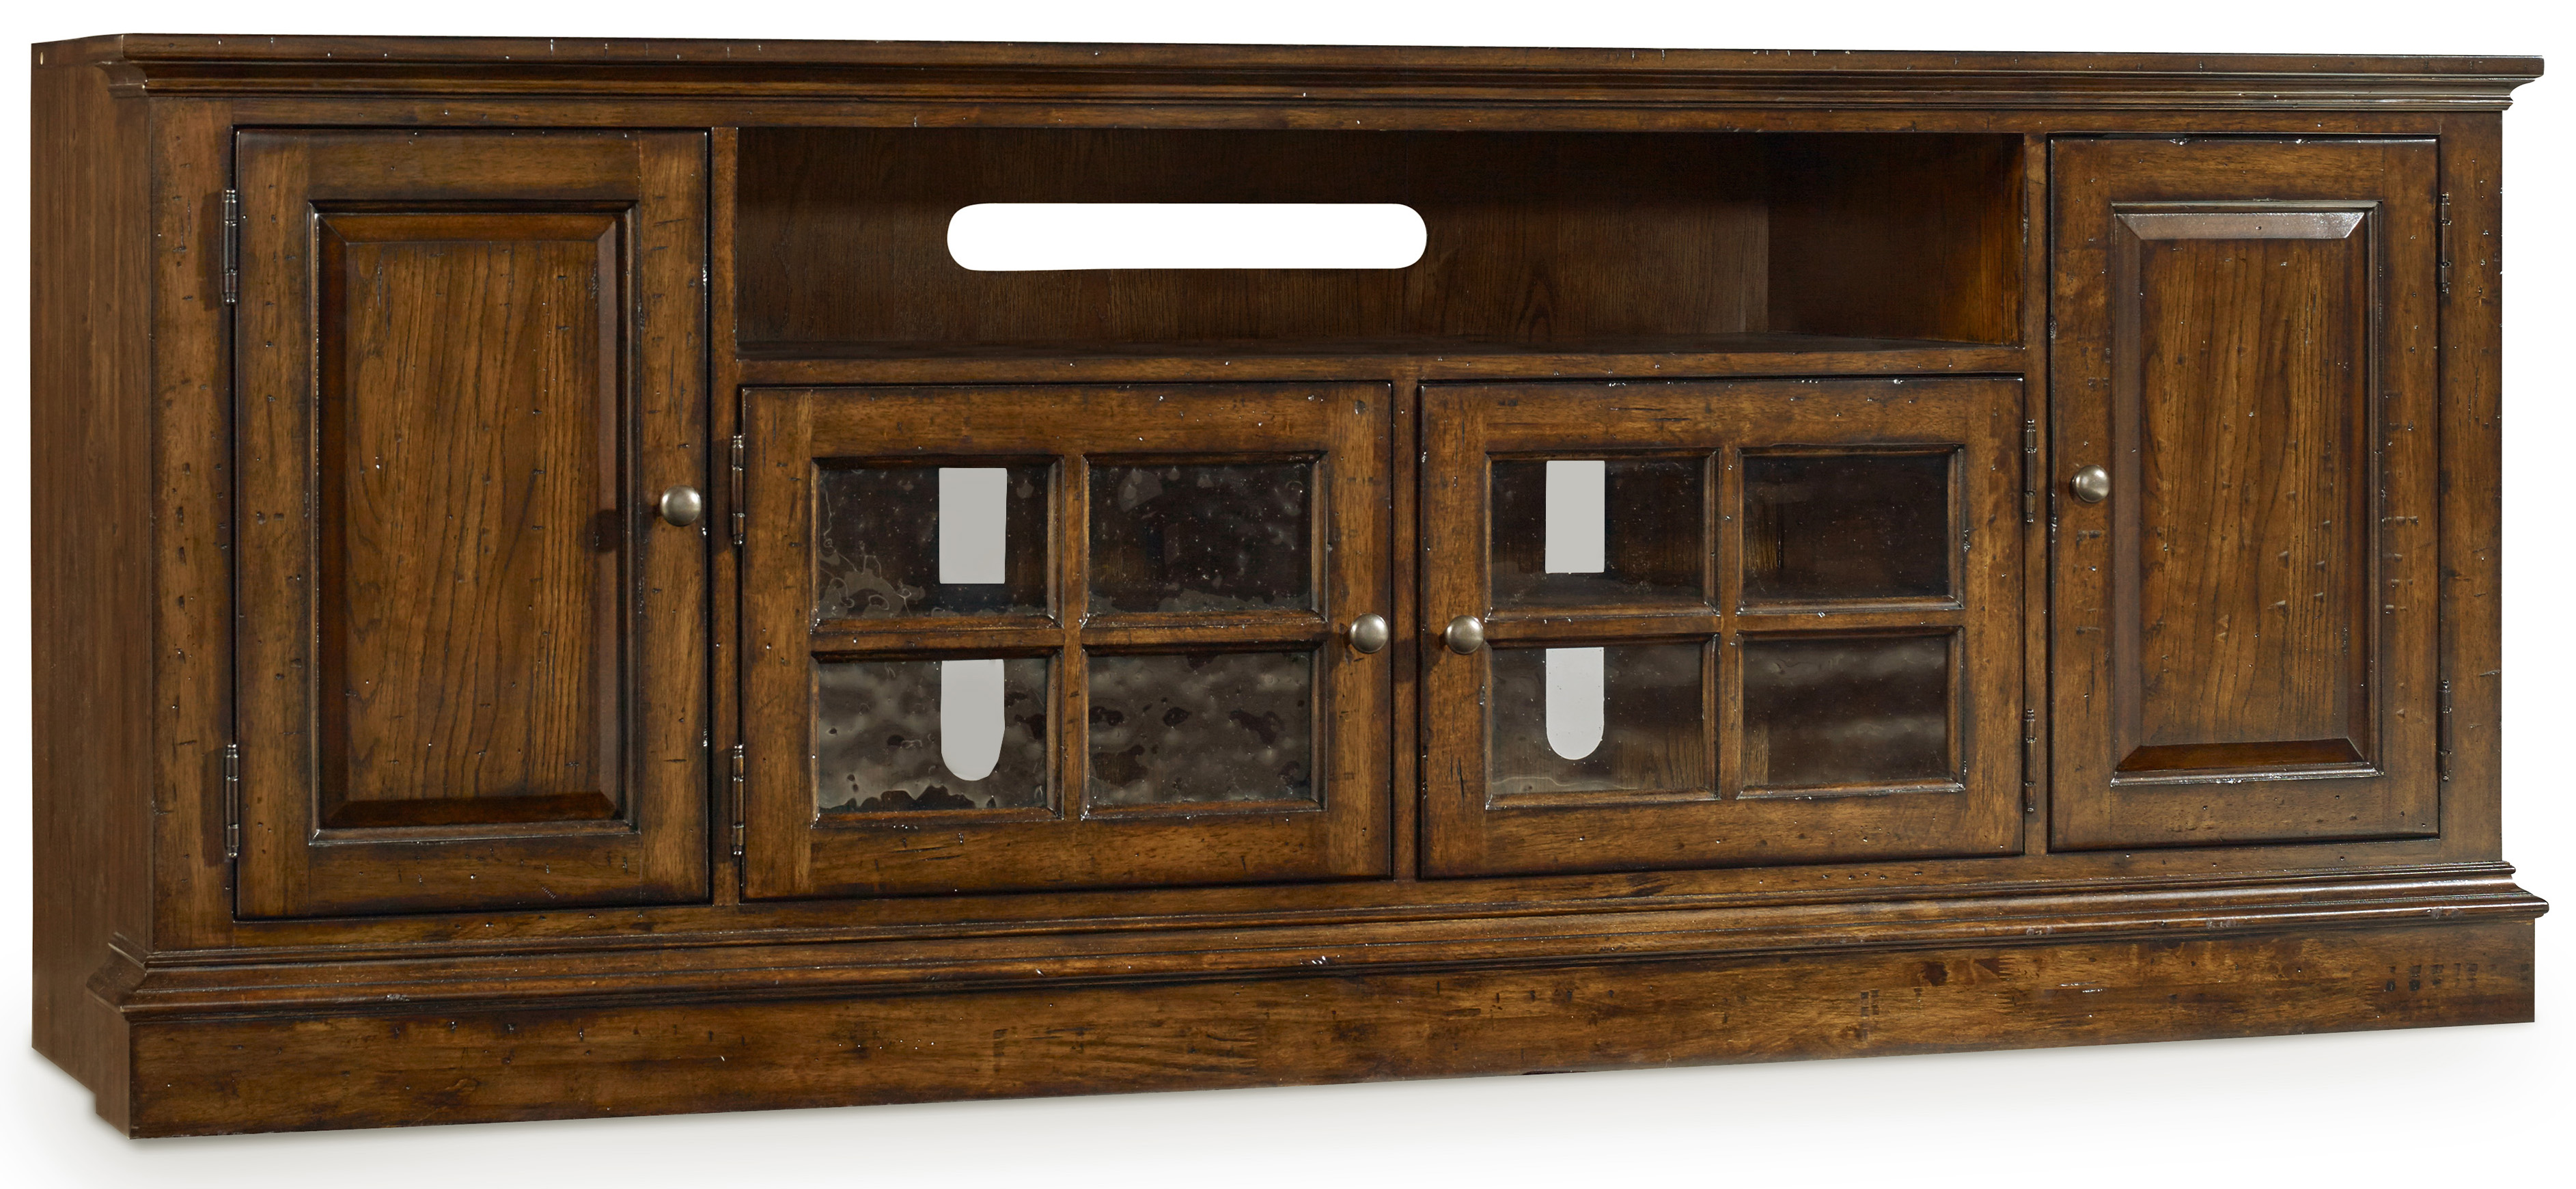 Hooker Furniture Brantley Entertainment Console - Item Number: 5302-70475